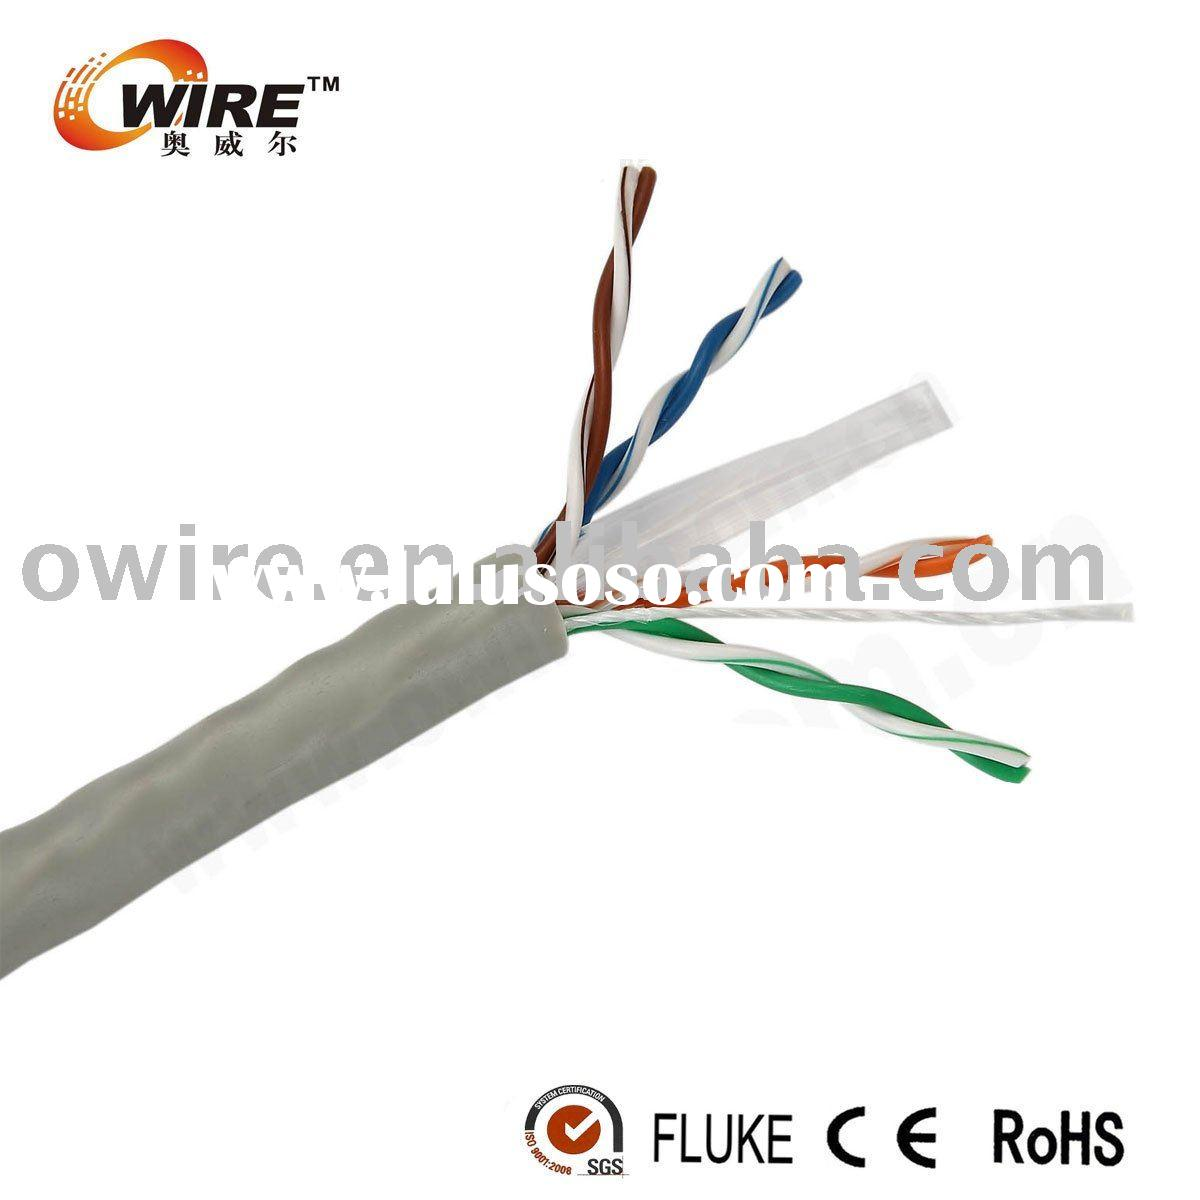 0.56mm Pure copper Cat6 UTP lan cable